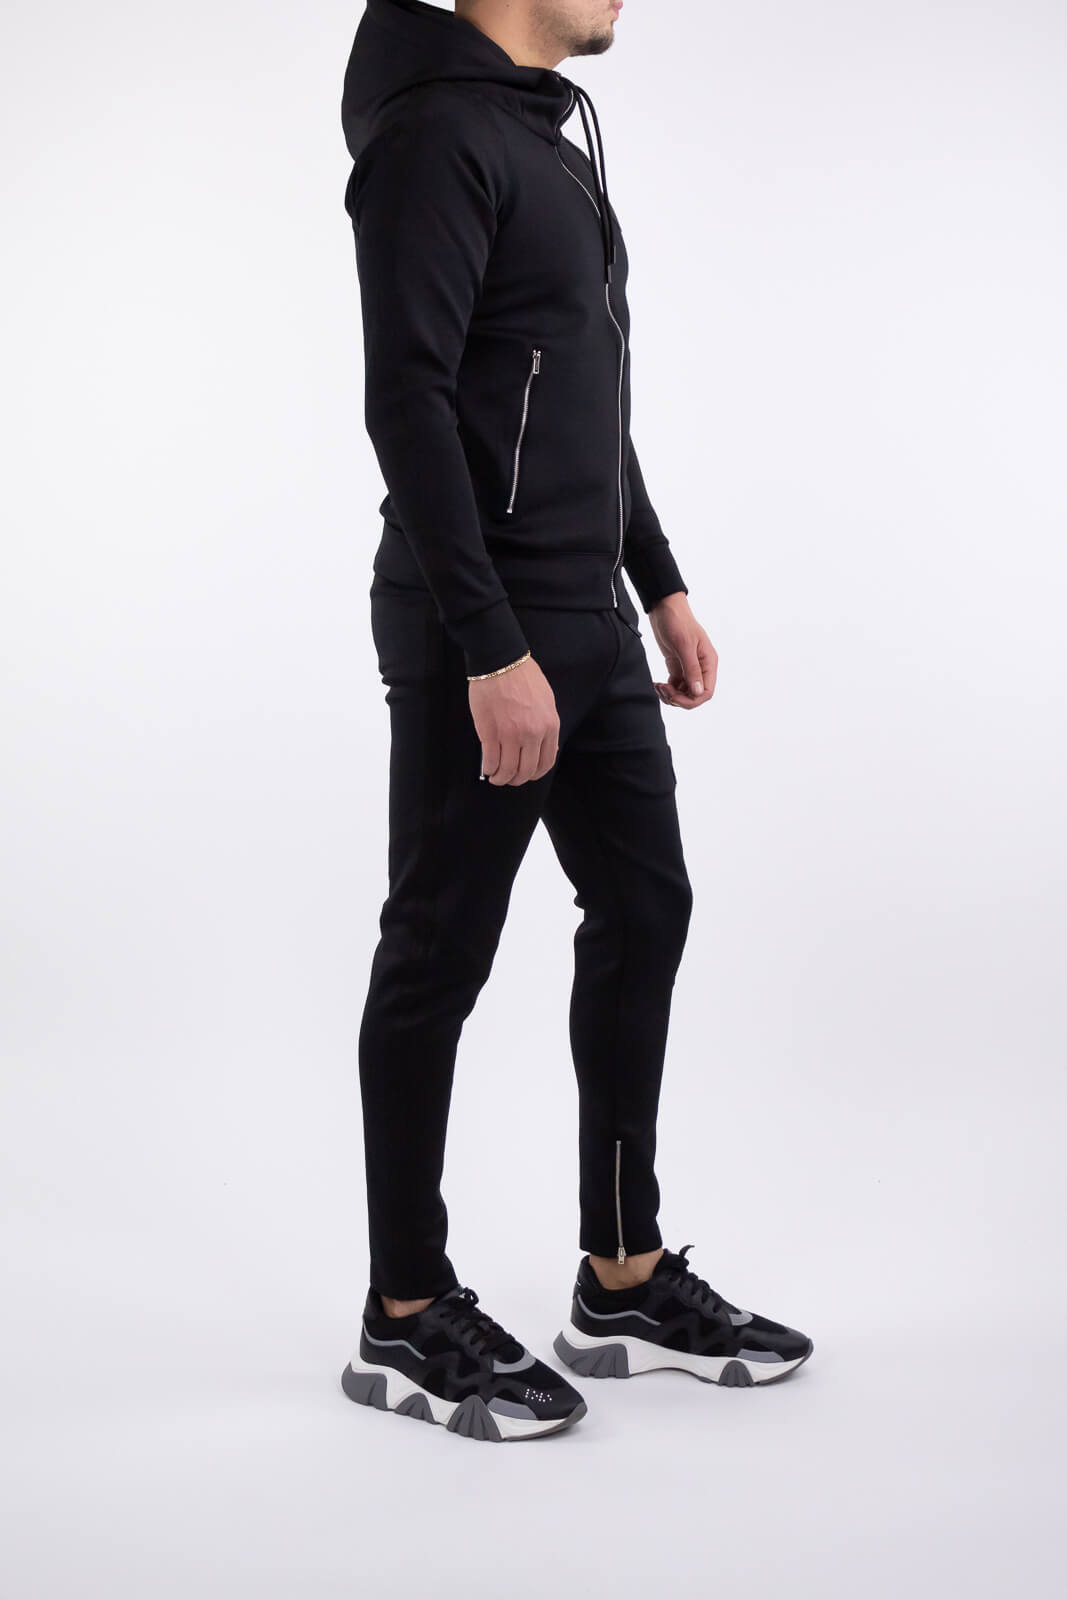 Richesse Generalissimo Tracksuit-03